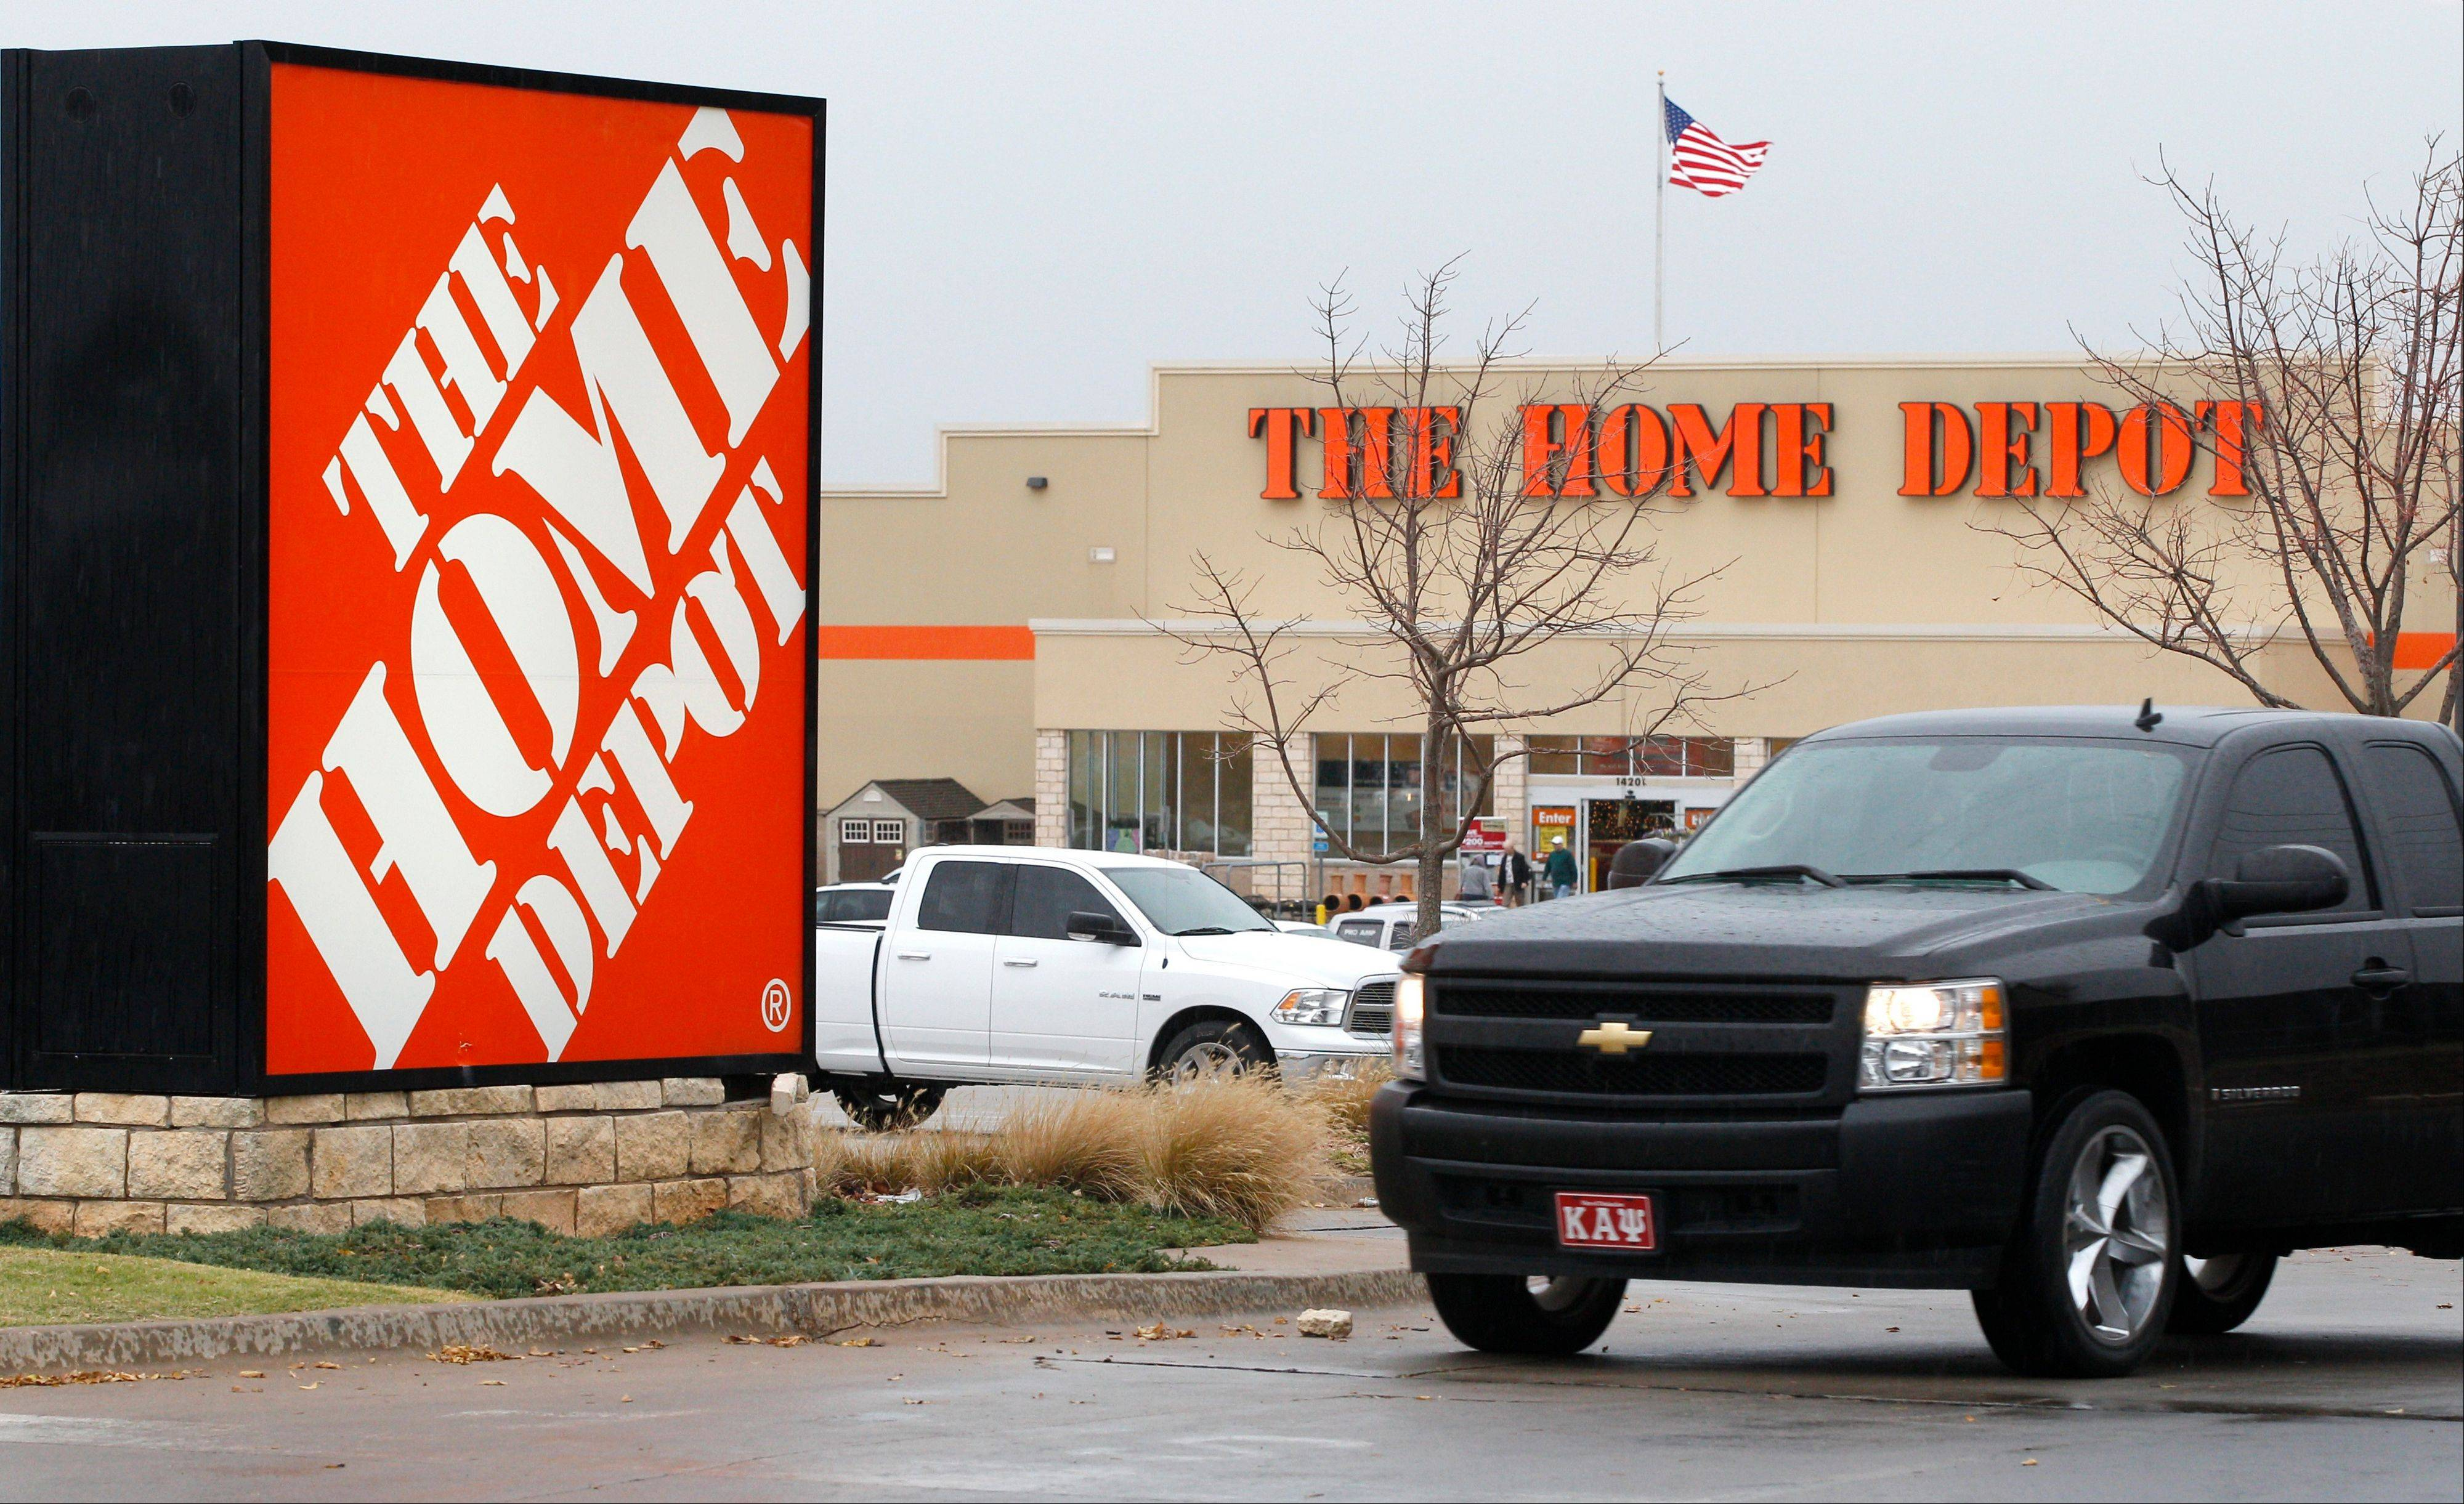 Better sales in the U.S. and healthy demand for its mainstay home-improvement products helped Home Depot�s net income rise 13 percent in its fiscal second quarter.